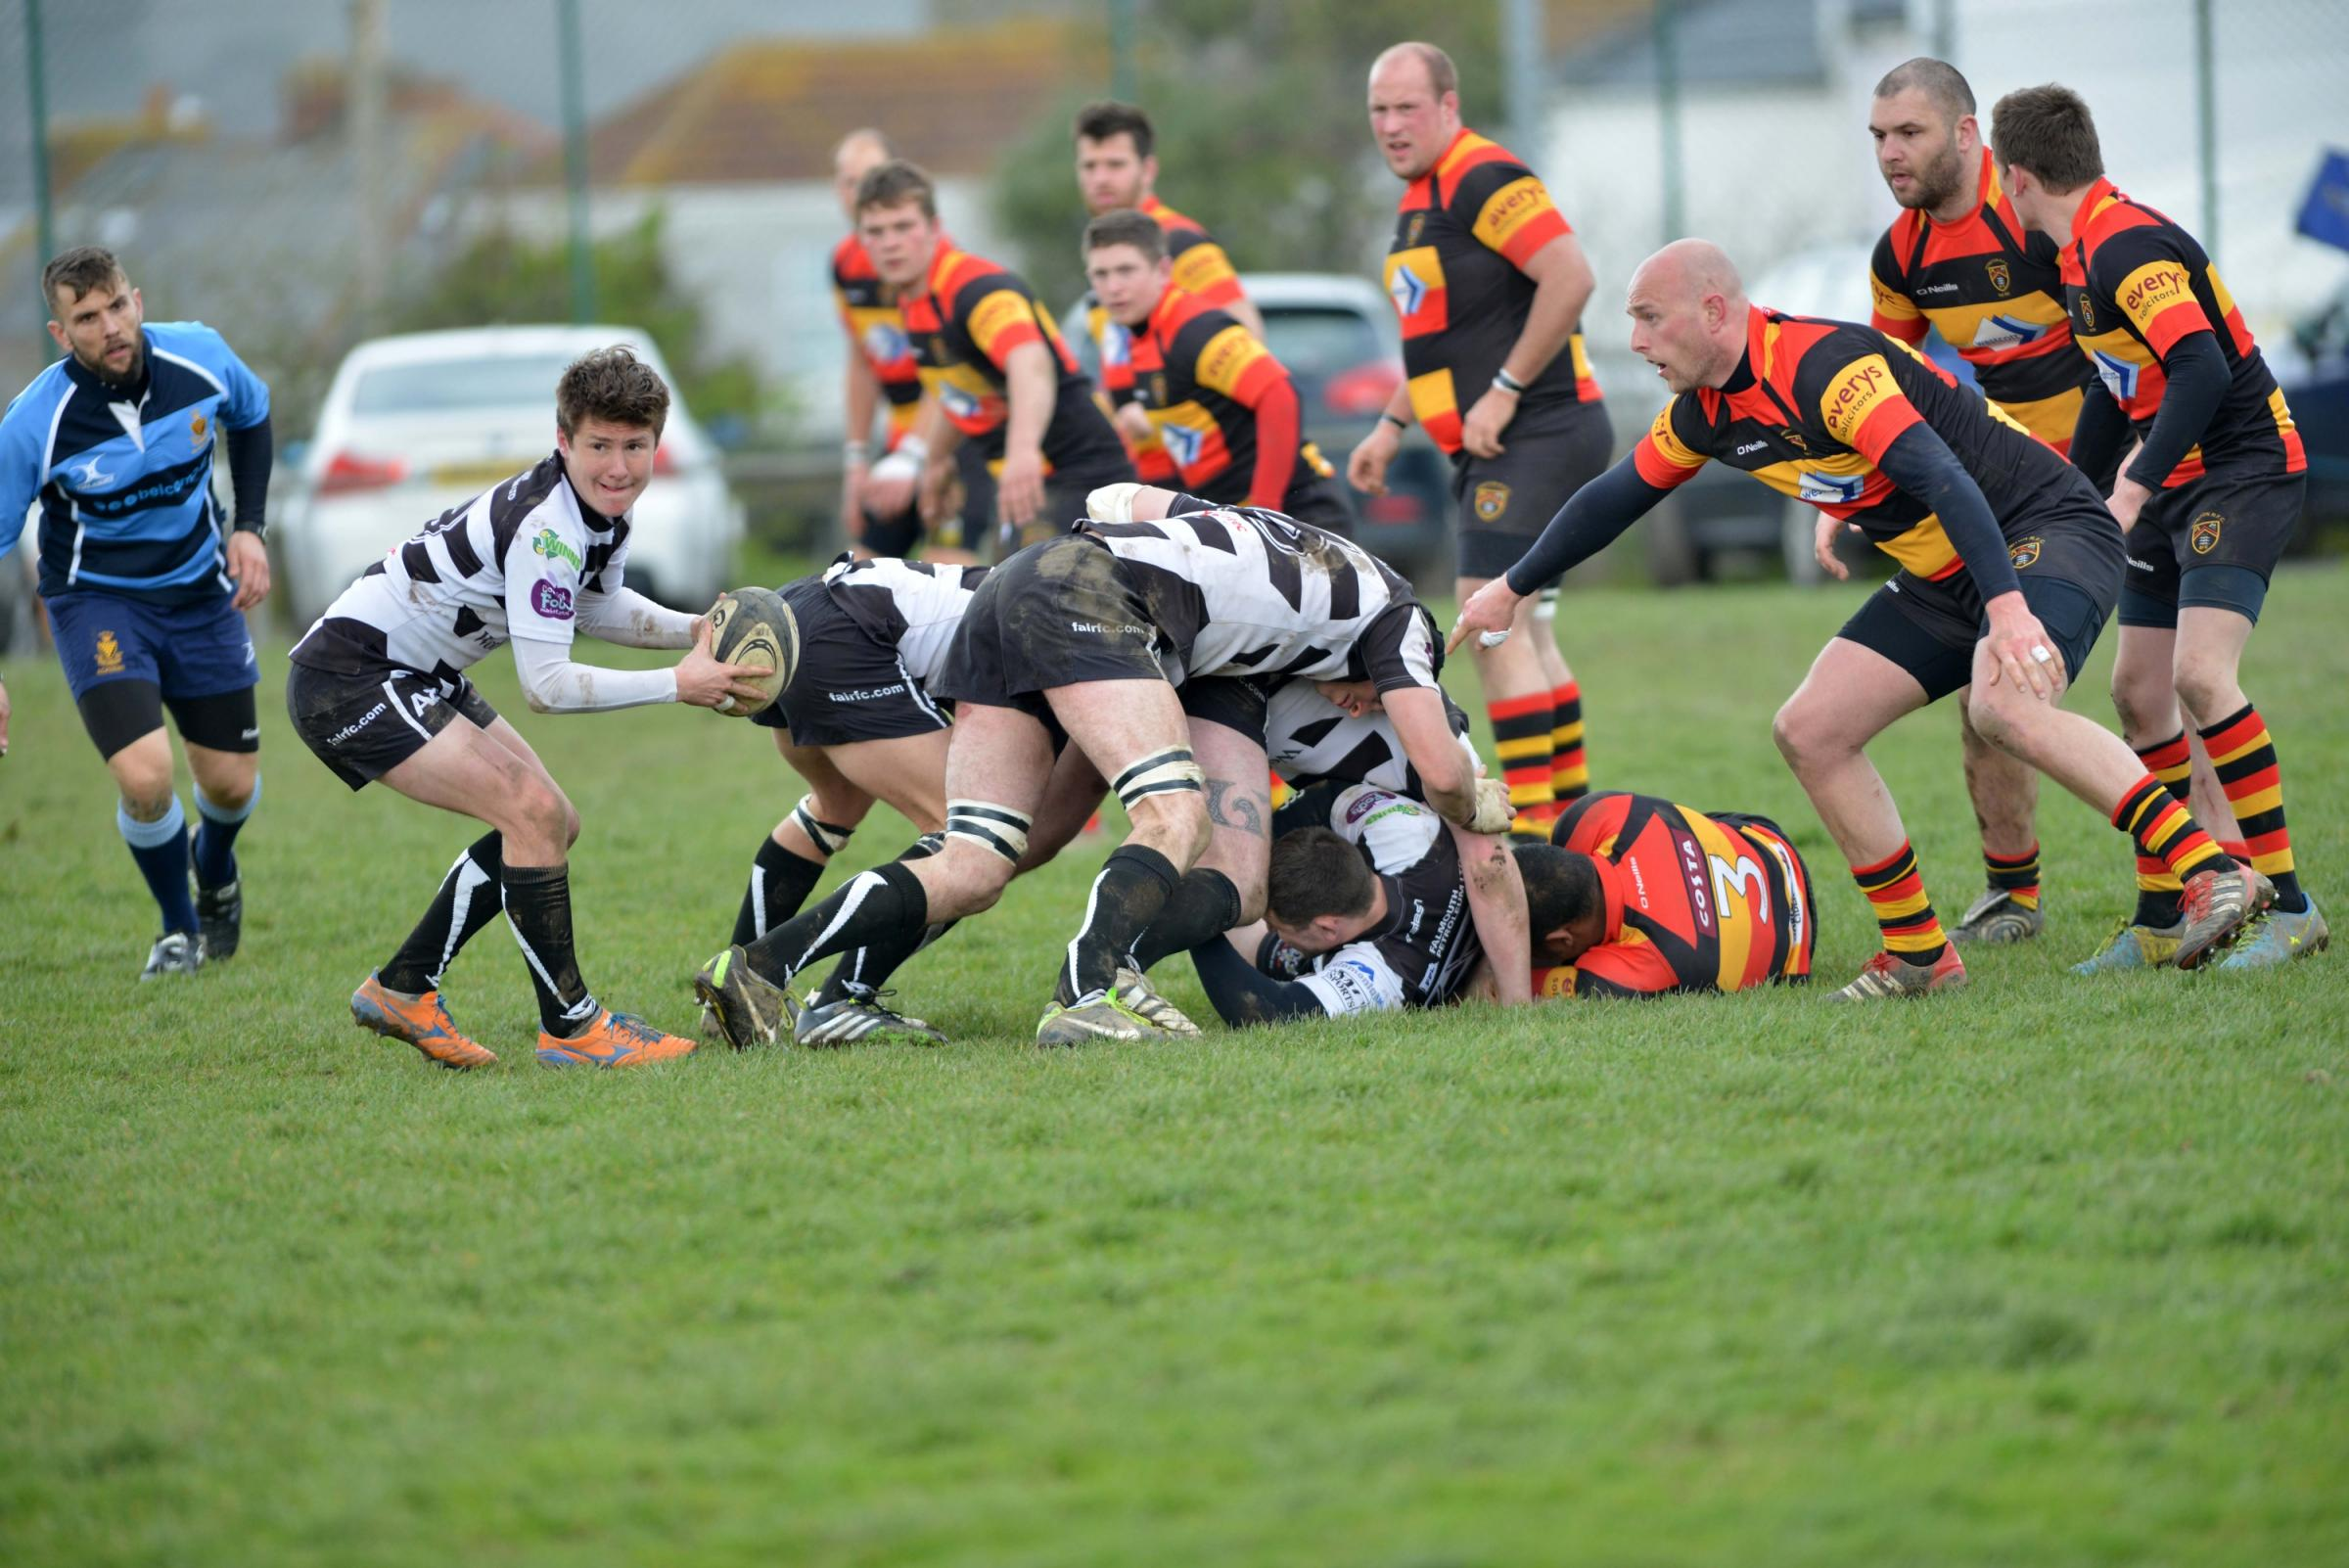 Gritty Eagles stop the rot with victory over Honiton